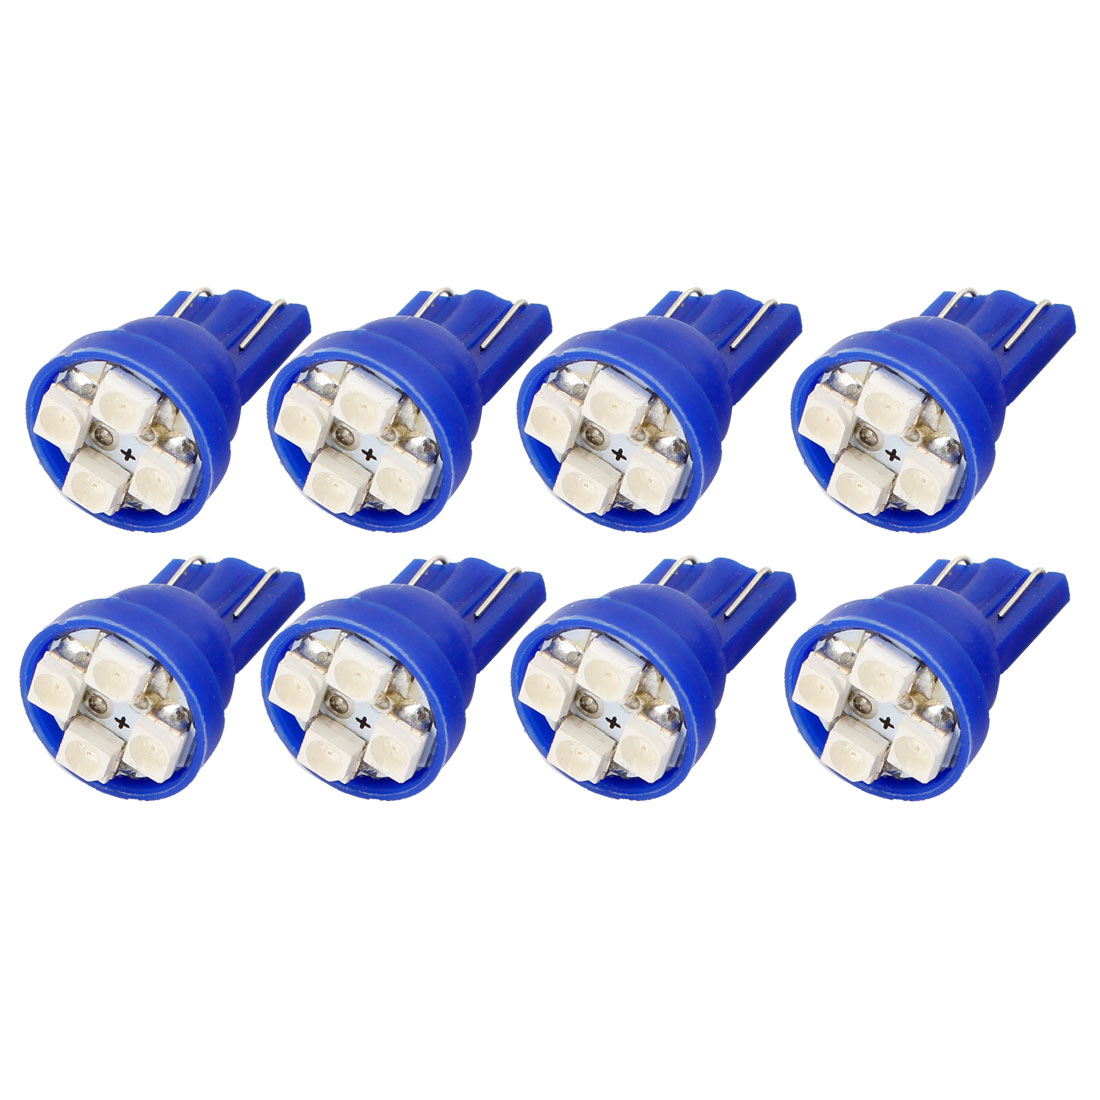 8pcs Car T10 194 168 W5W 1210 SMD 4-LED Dashboard Light Lamp Bulbs Blue internal